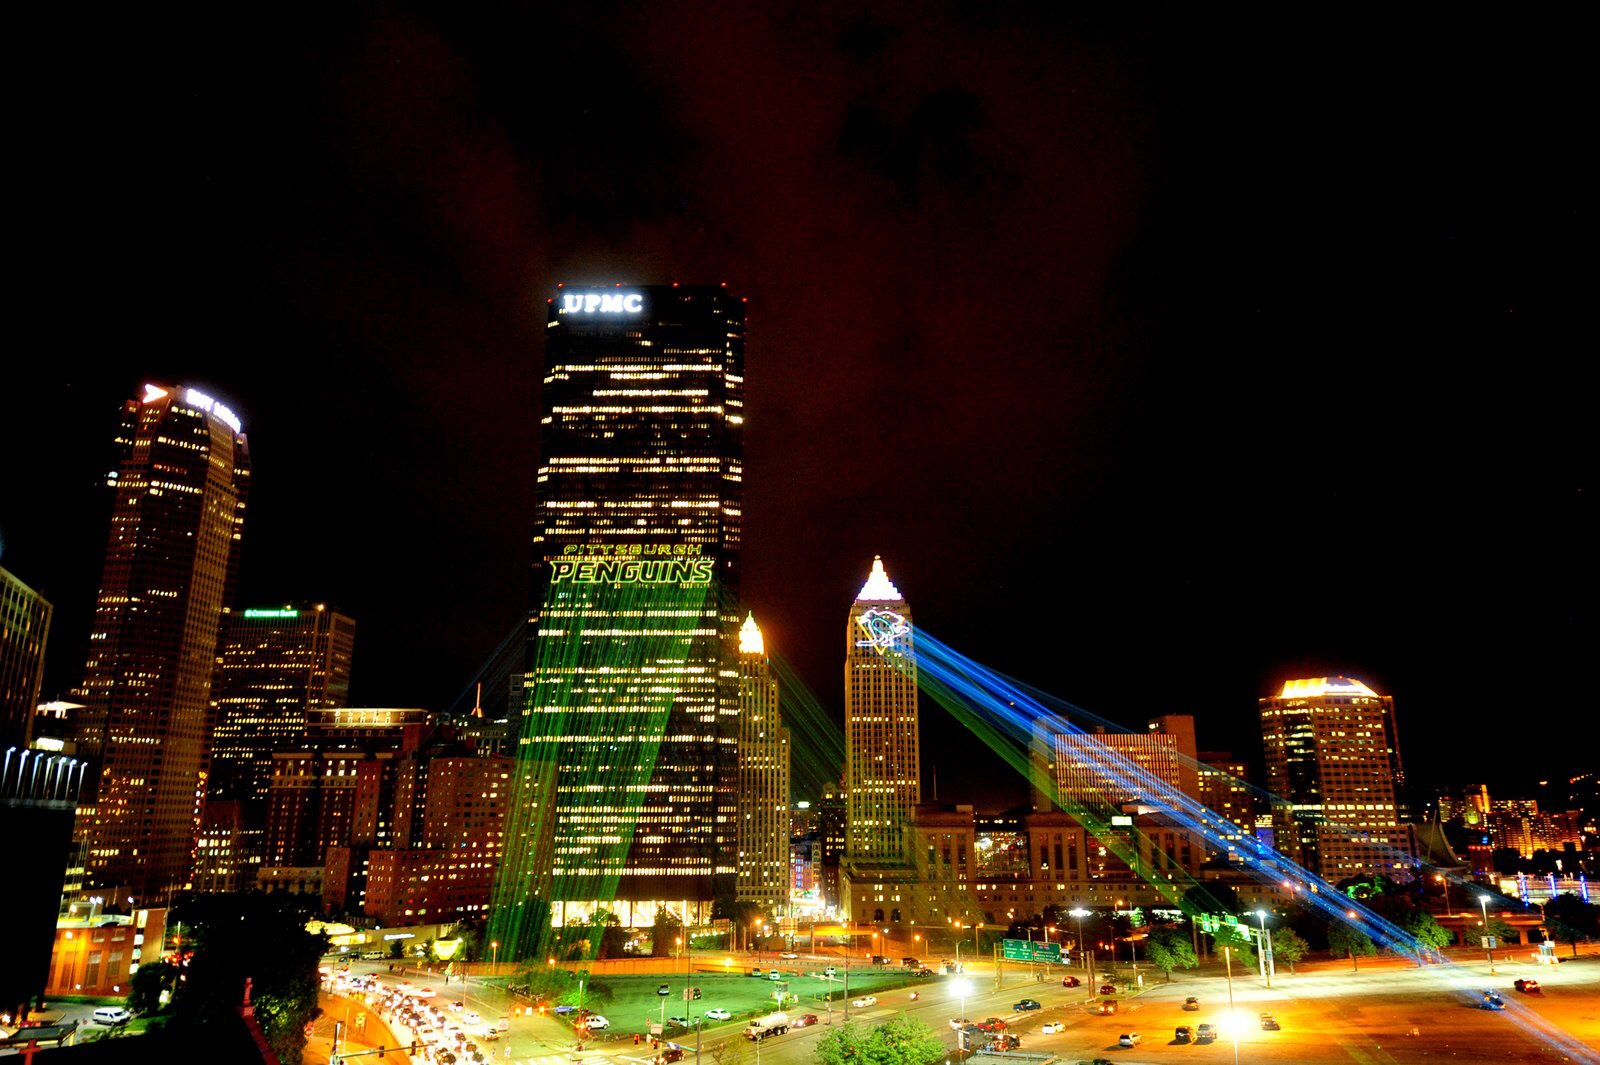 Pittsburg-Penguins Stanley Cup 2016 NHL hockey Penguins Laser logo projection on buildings